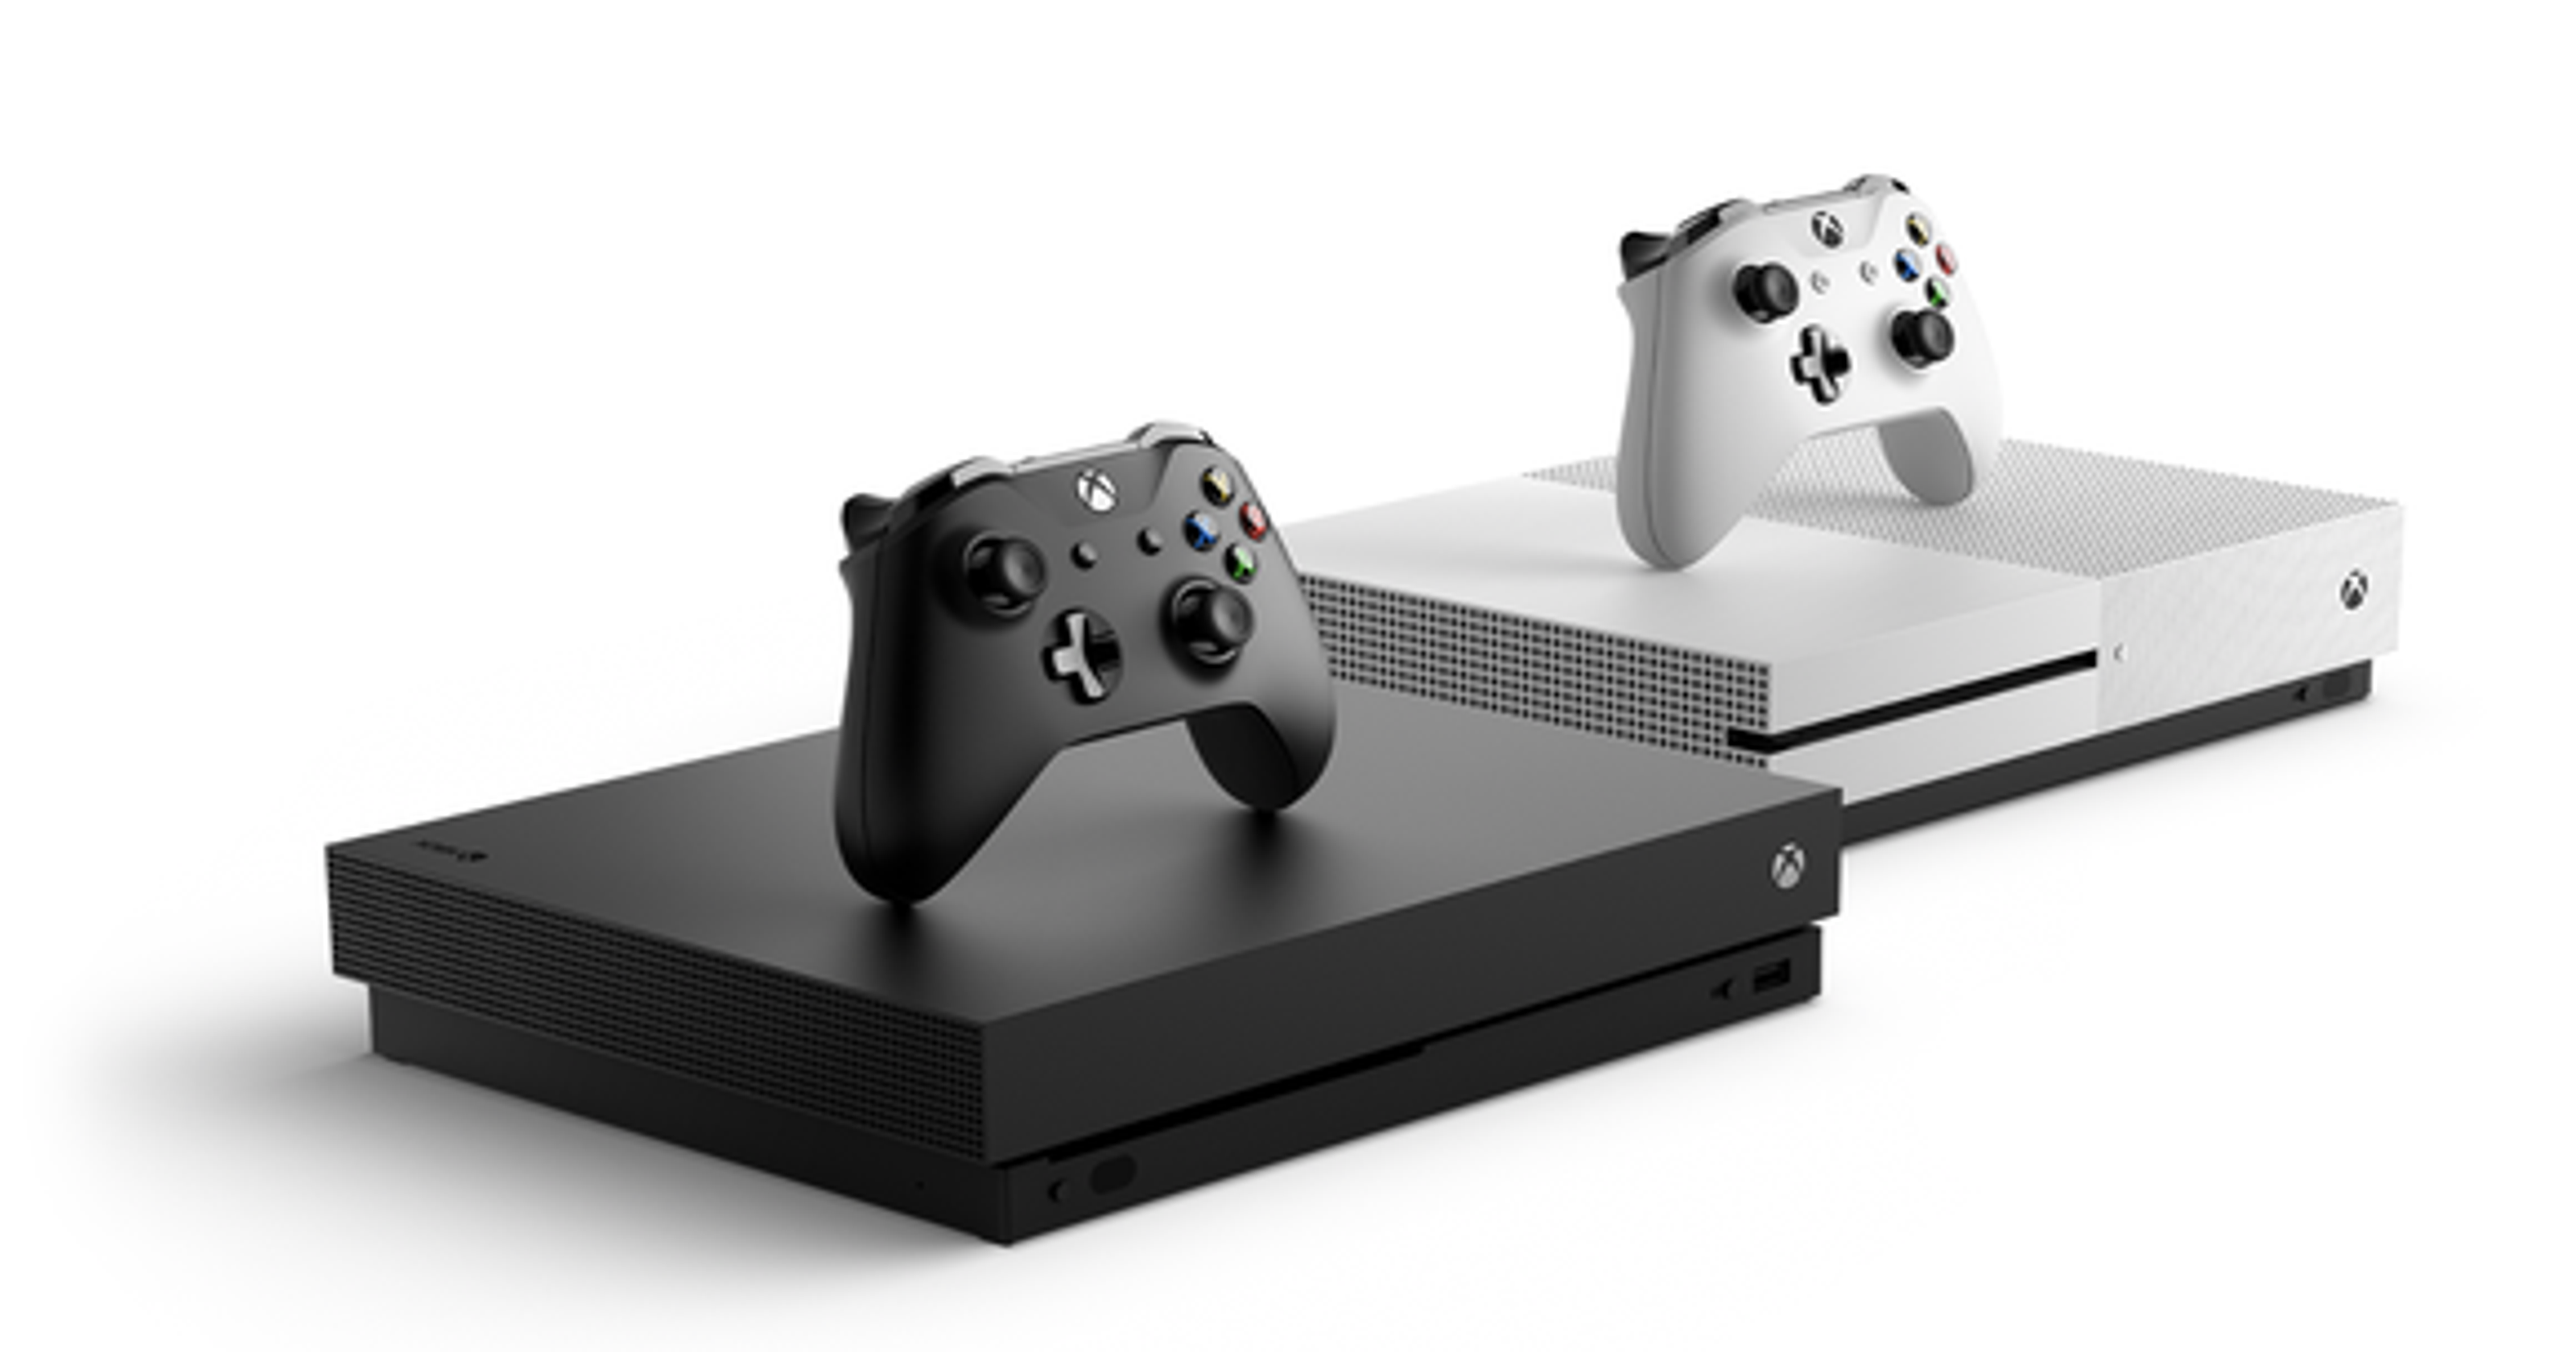 How to set up Xbox One S or X: Connecting to your TV and more